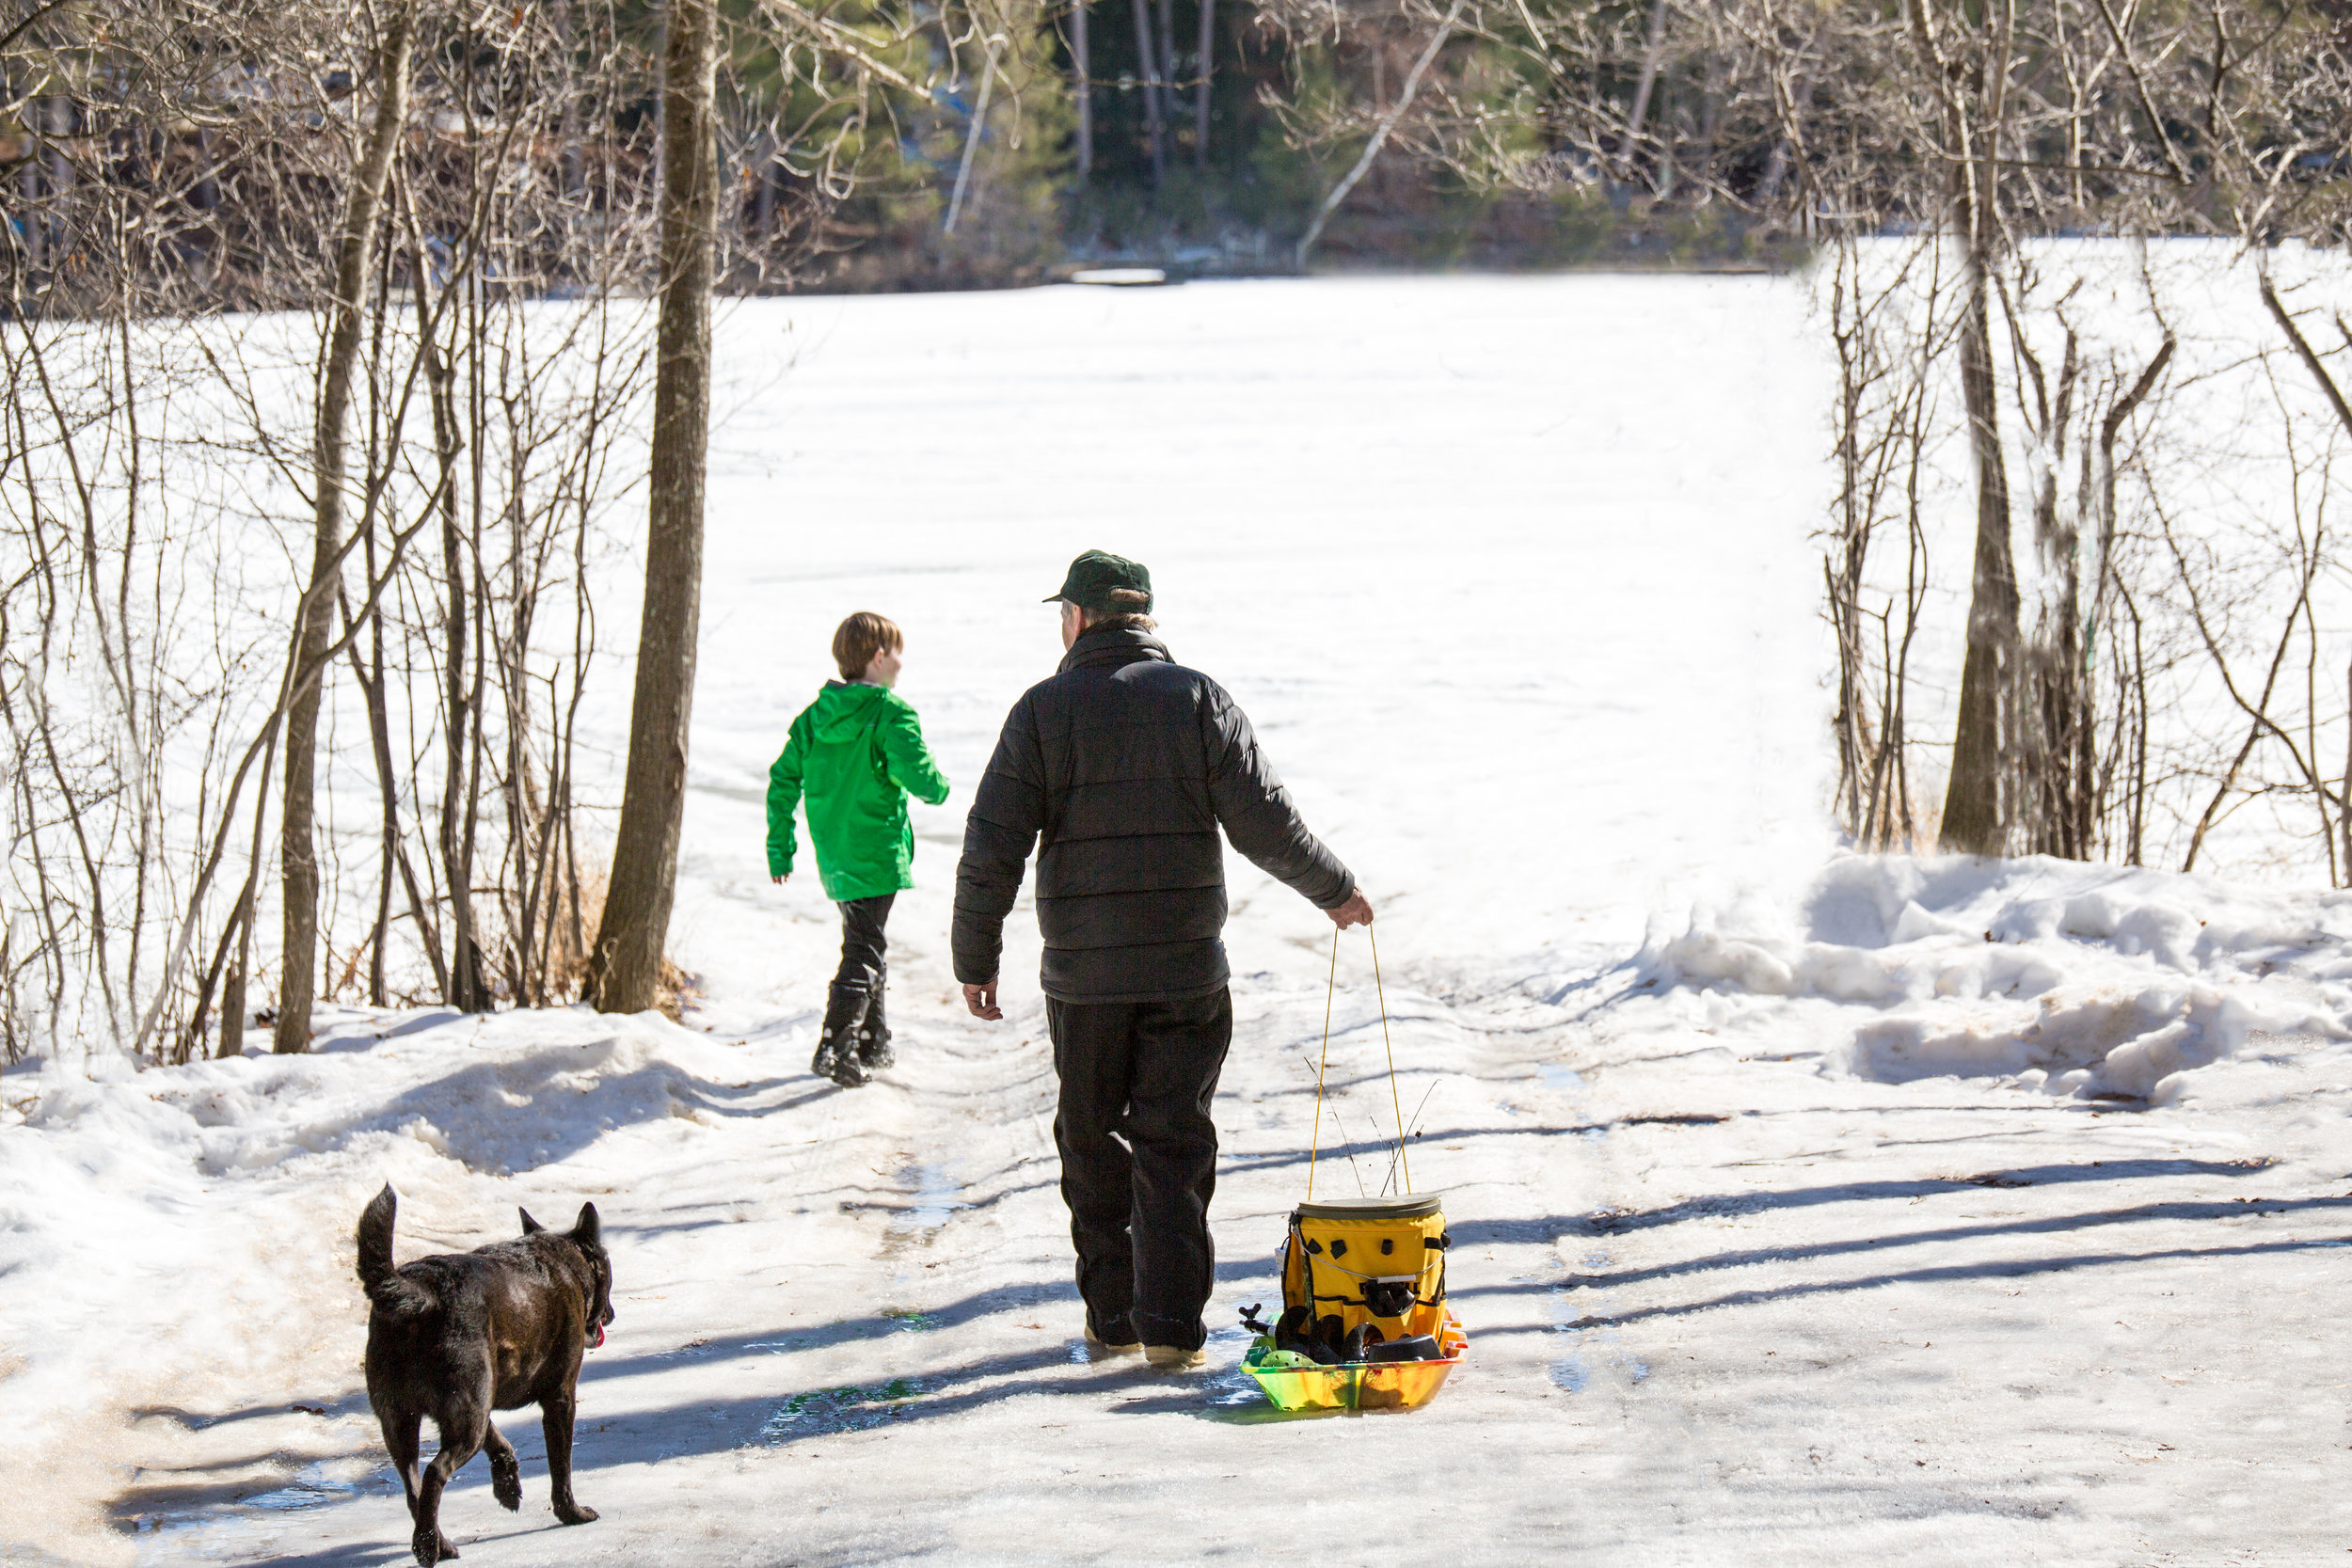 The ice-fishermen walking out to their spot on the lake